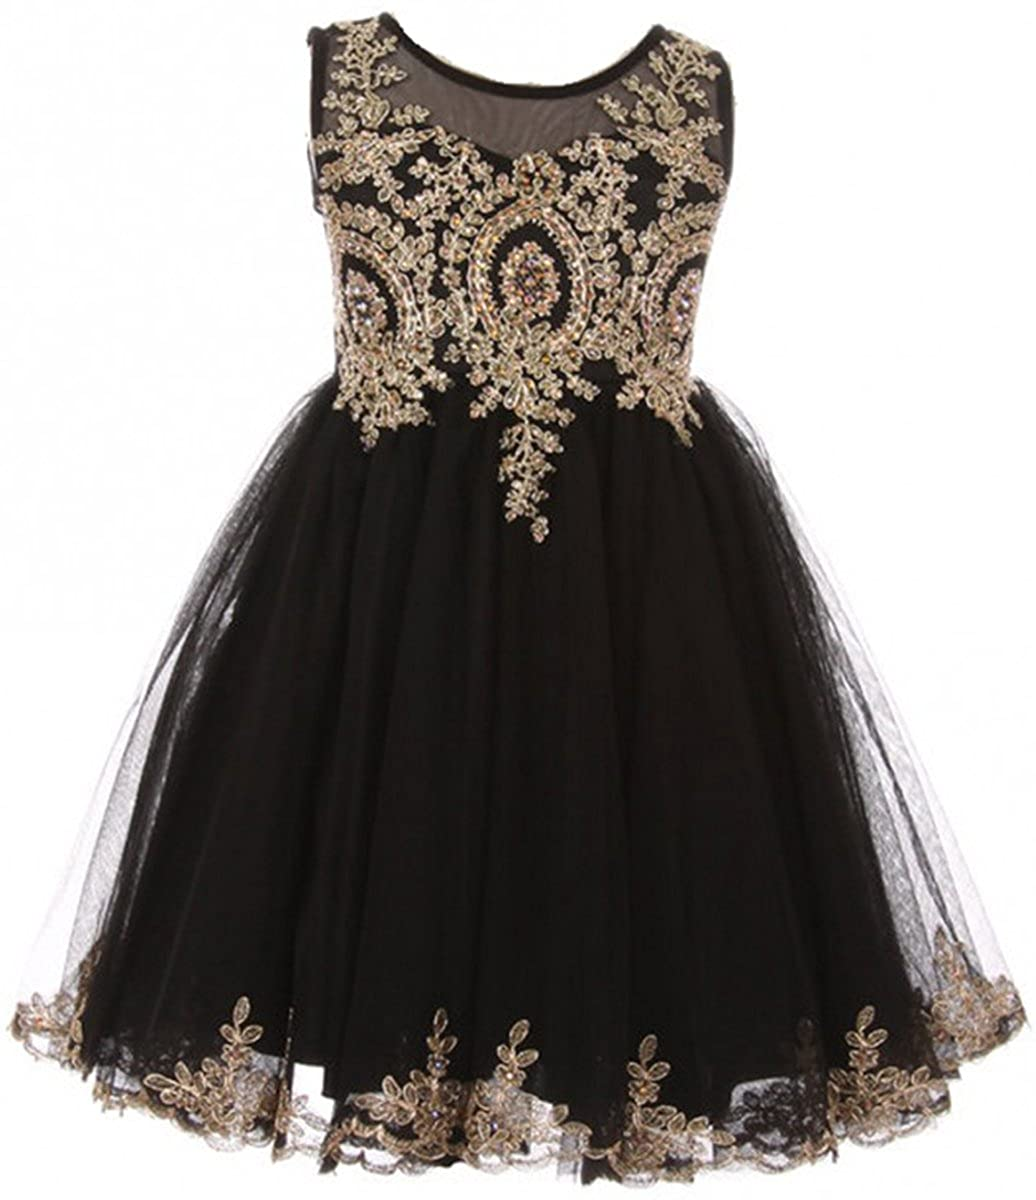 c5c5e5a115e Stunning Christmas Holiday Girls dress. Decorated with a golden pattern  that has a few gold rhinestones that match the golden pattern.